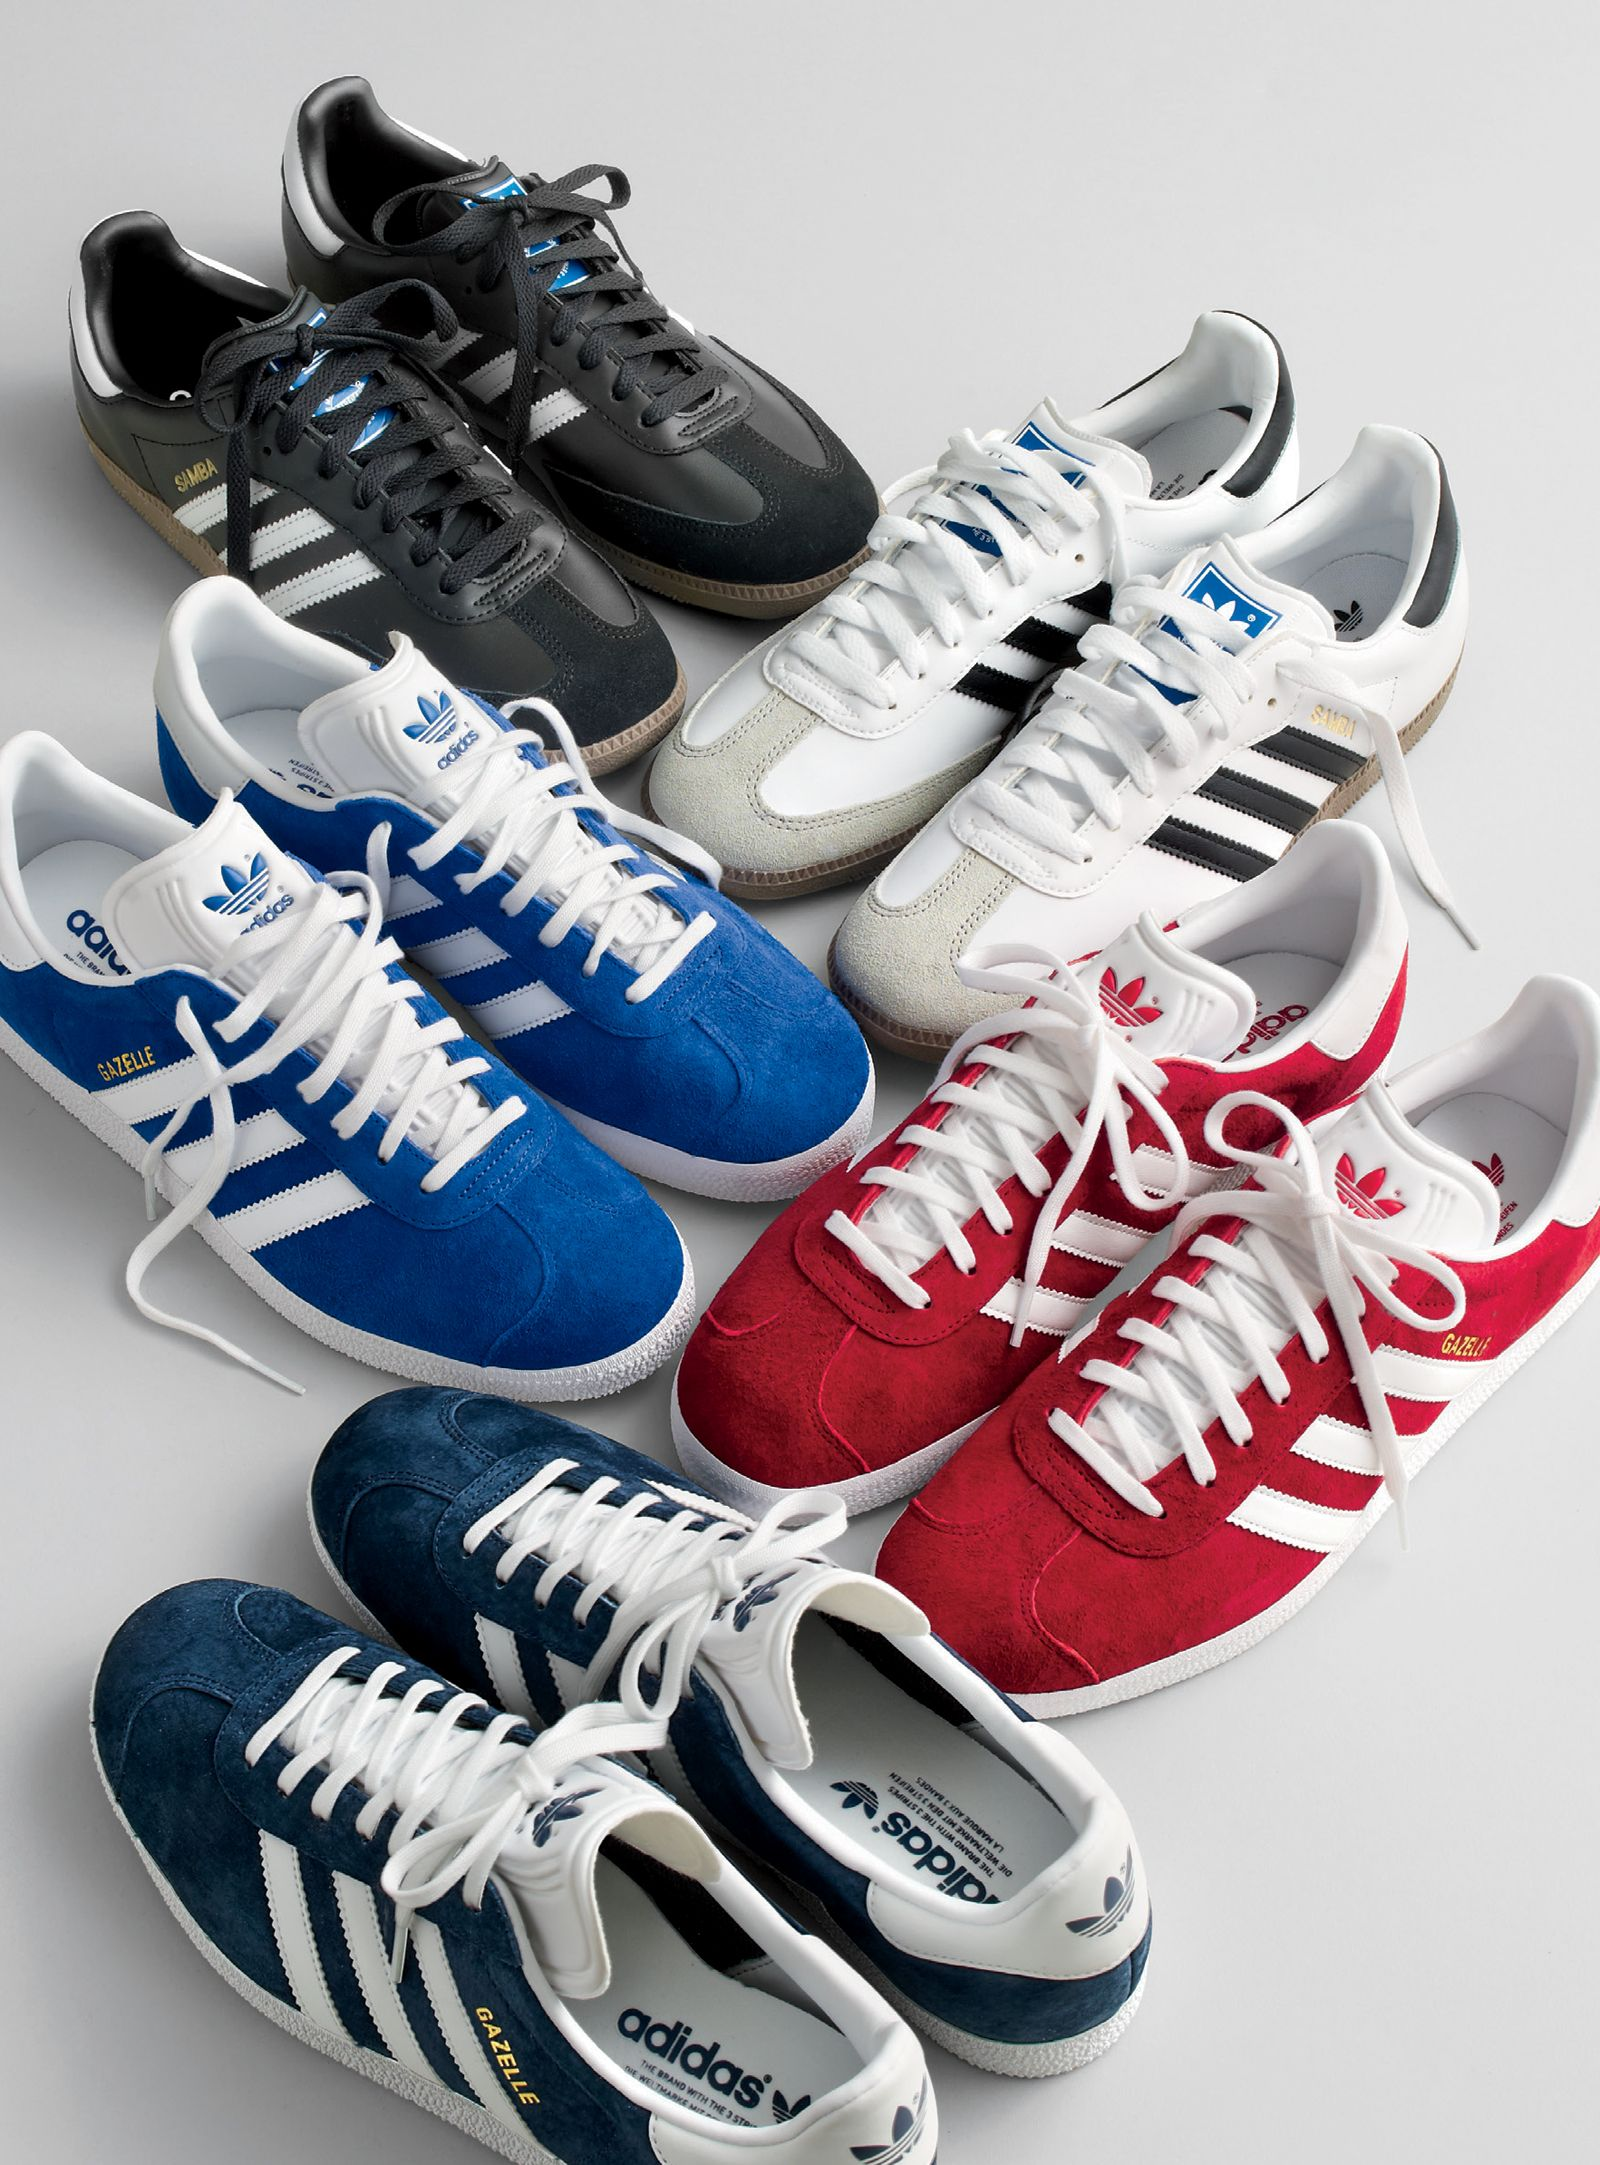 best service c8b19 05e7b J.Crew In Good Company  the Adidas® Samba® and Gazelle®. Since it s debut  in 1971, the triple-striped, suede-covered Gazelle has attained style MVP  status.